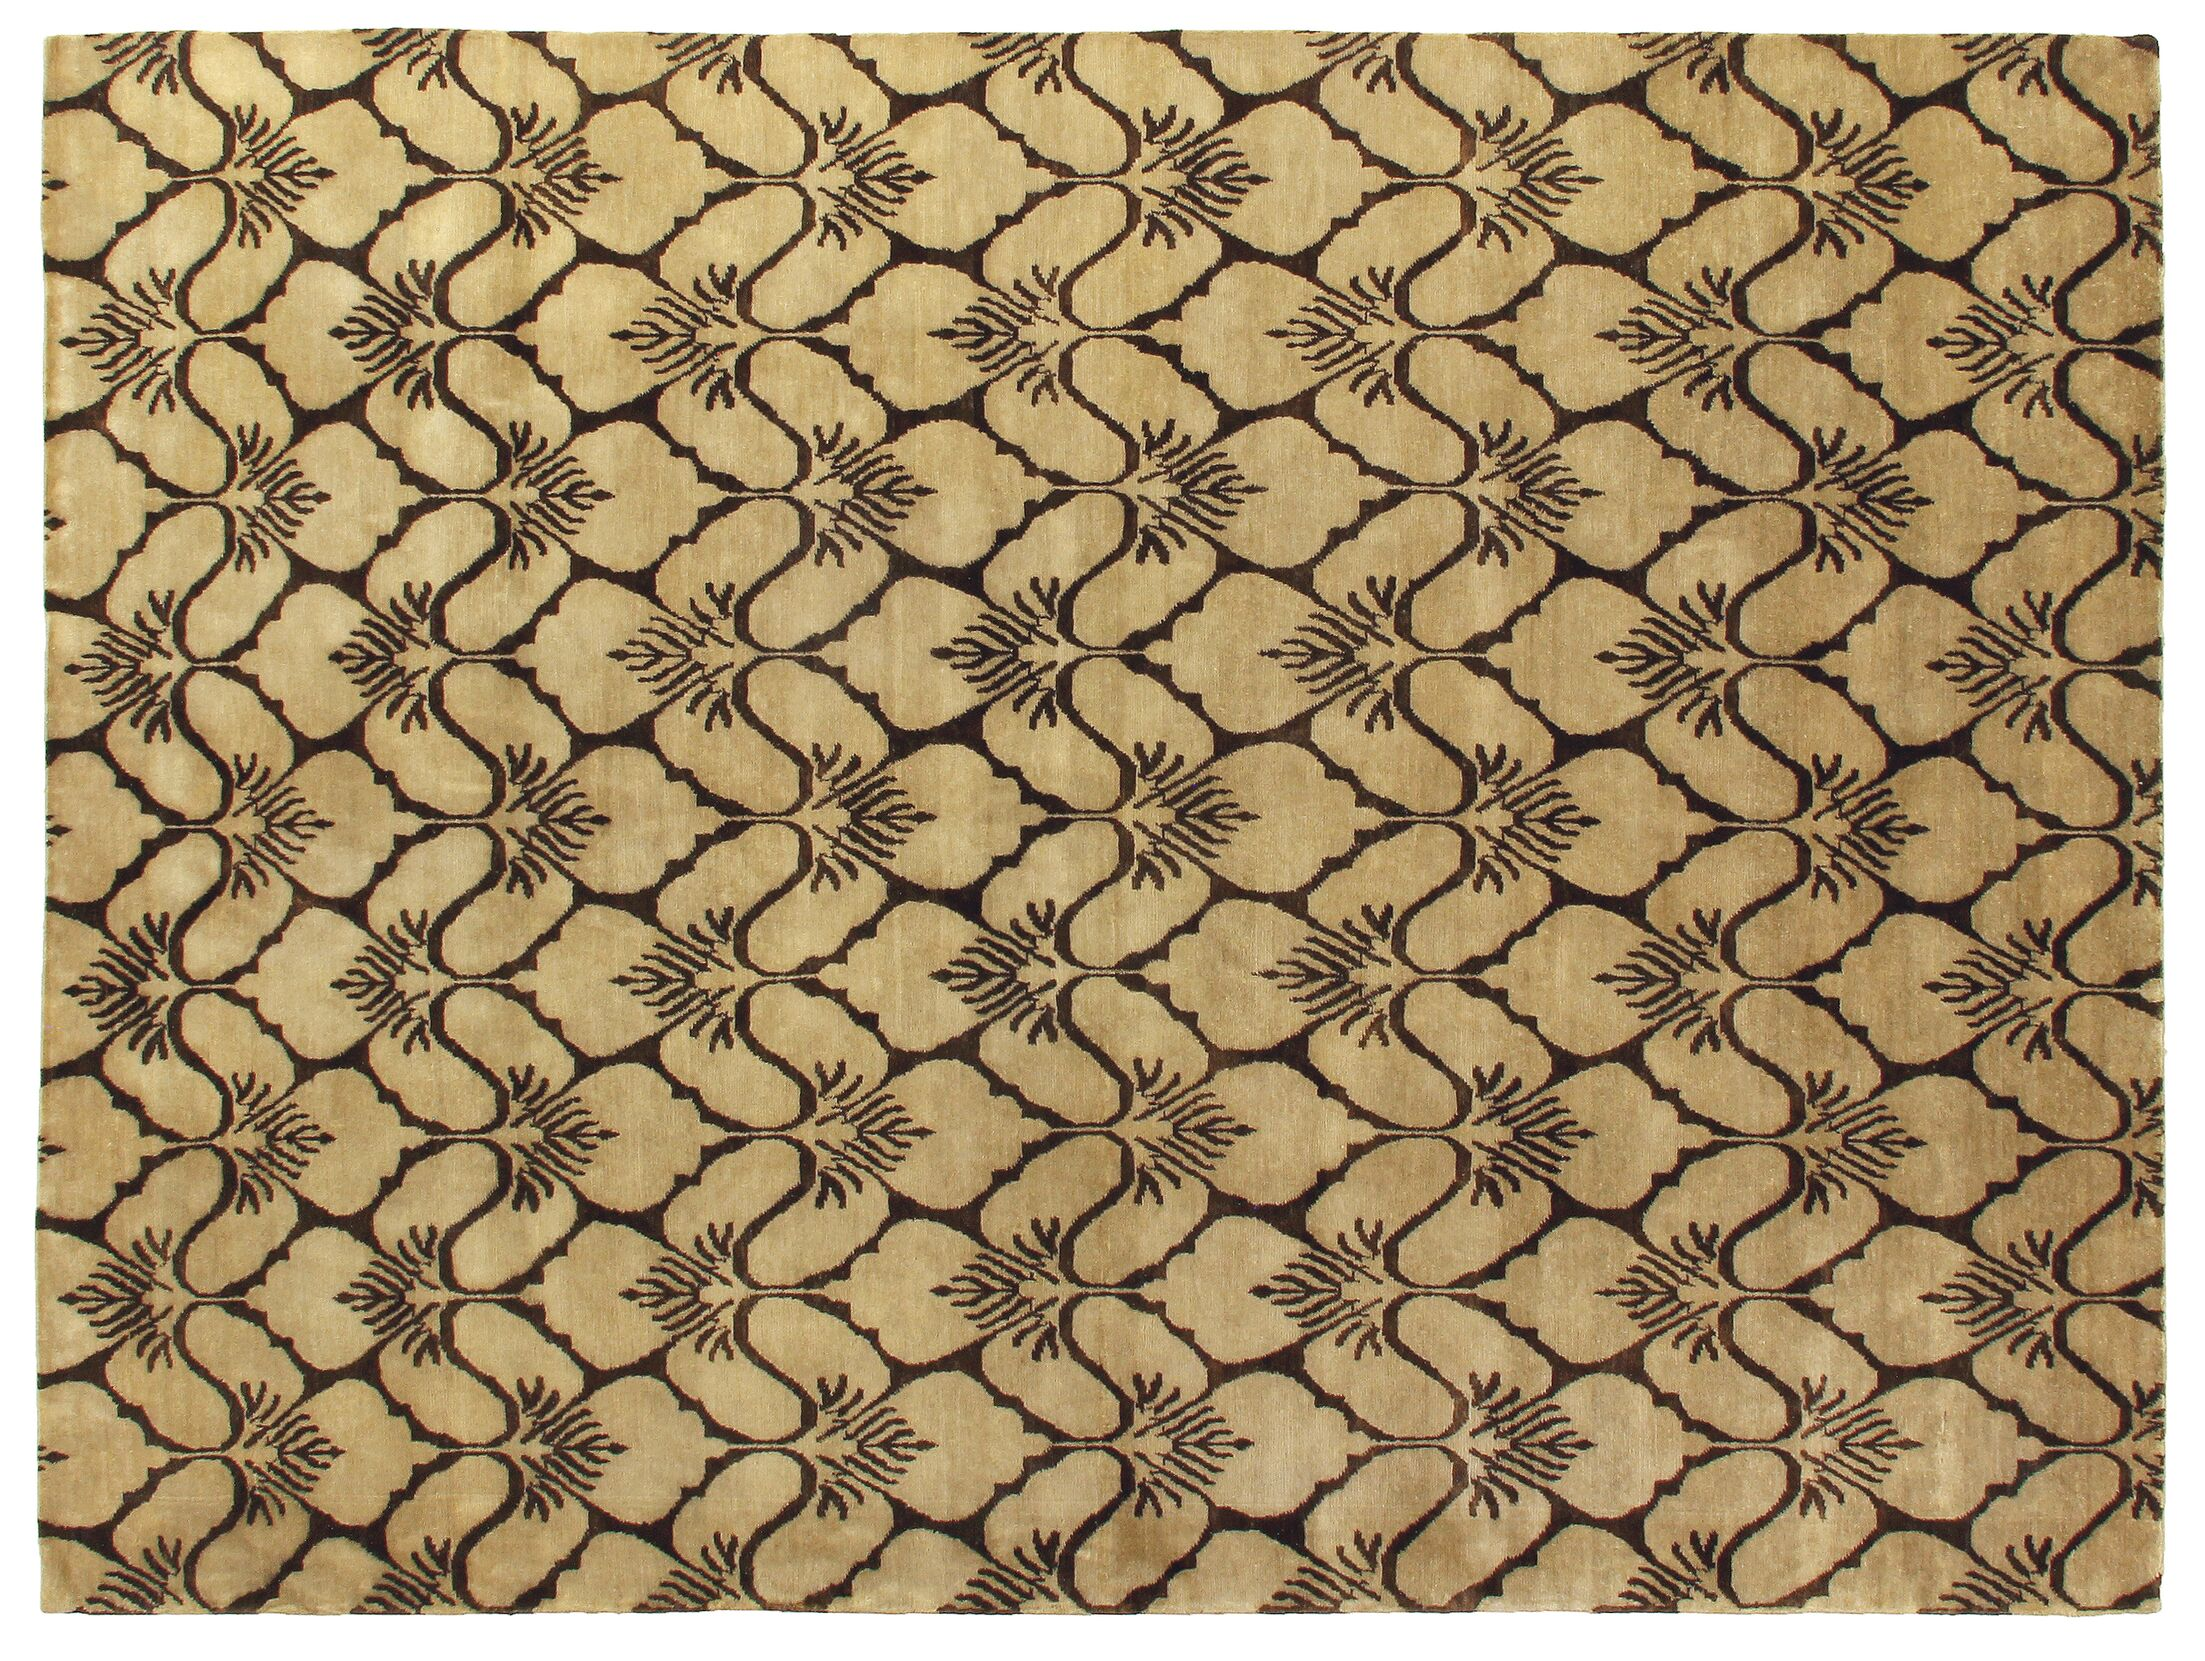 Metropolitan Hand Knotted Wool Brown/Ivory Area Rug Rug Size: Rectangle 6' x 9'